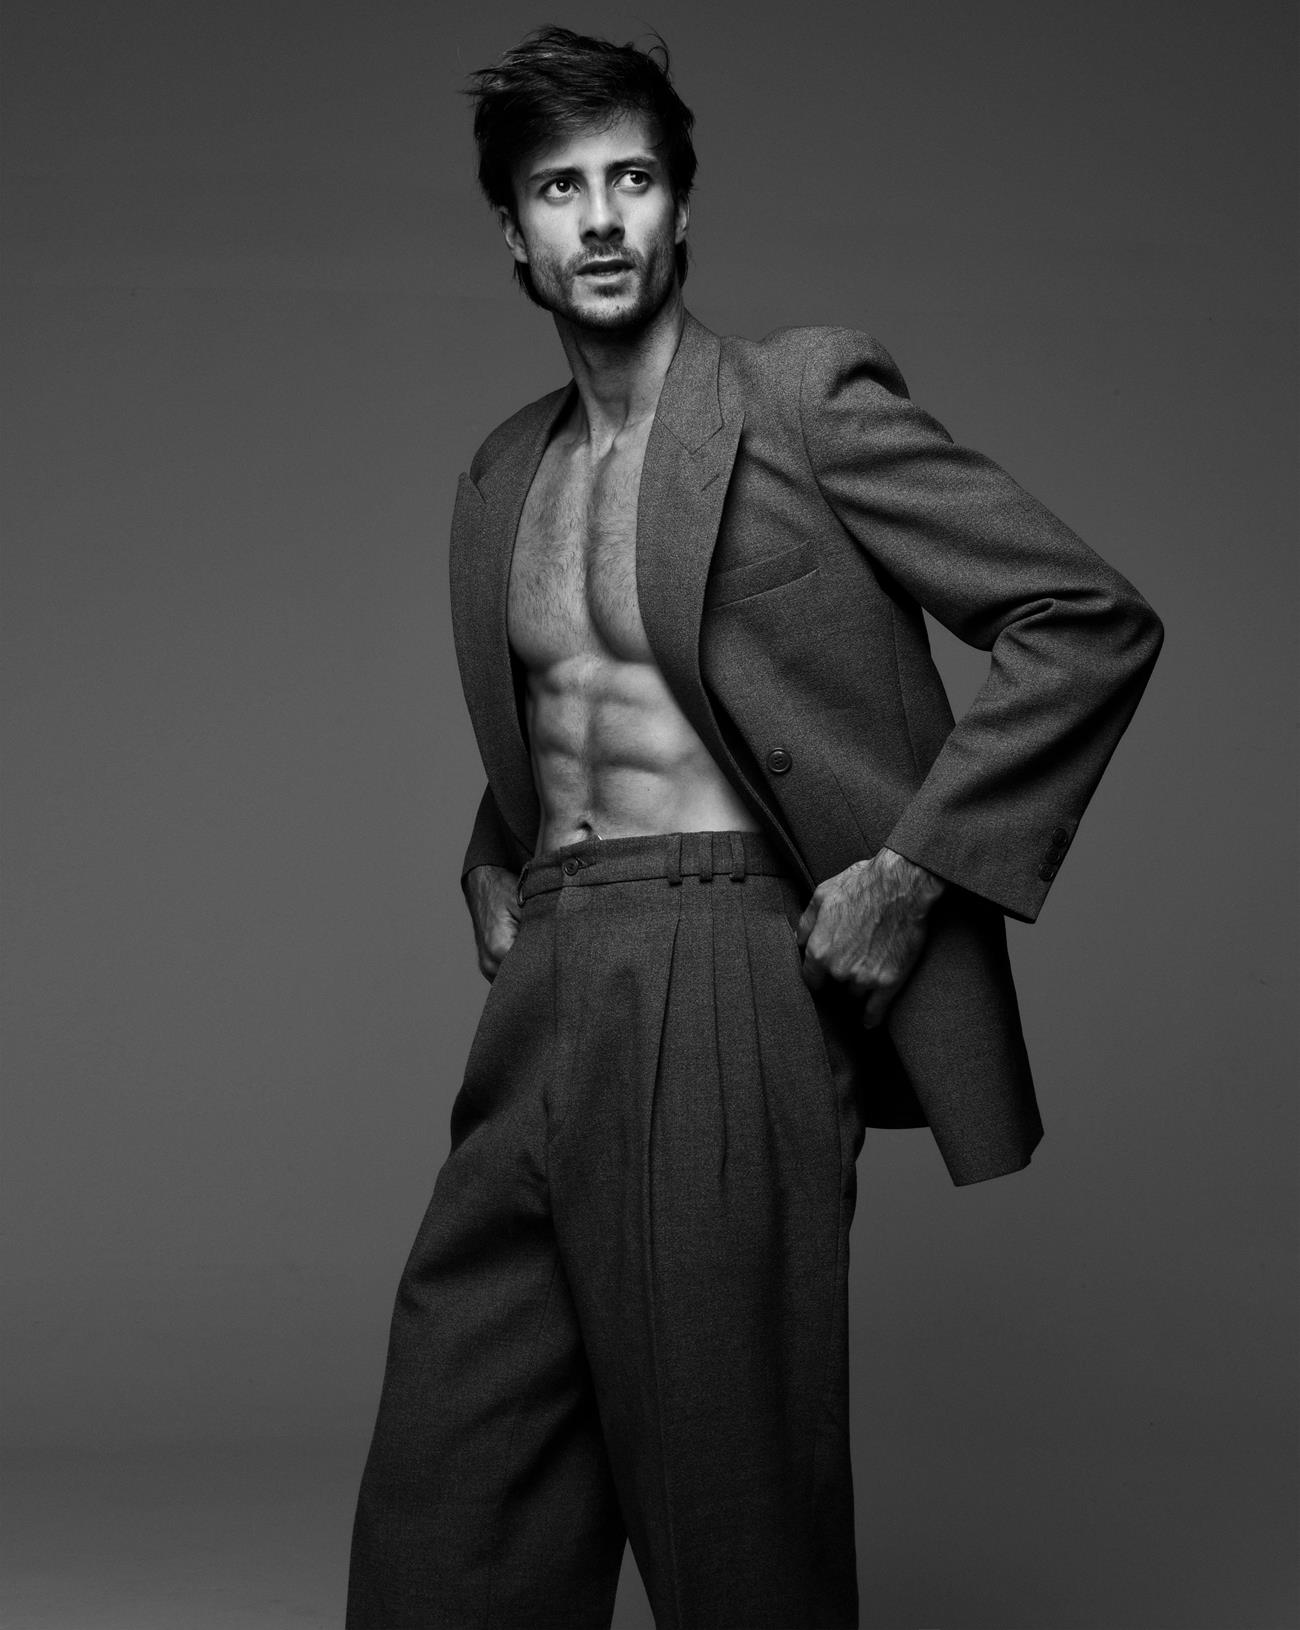 Gilberto Fritsch by Hudson Rennan for Brazilian Male Model